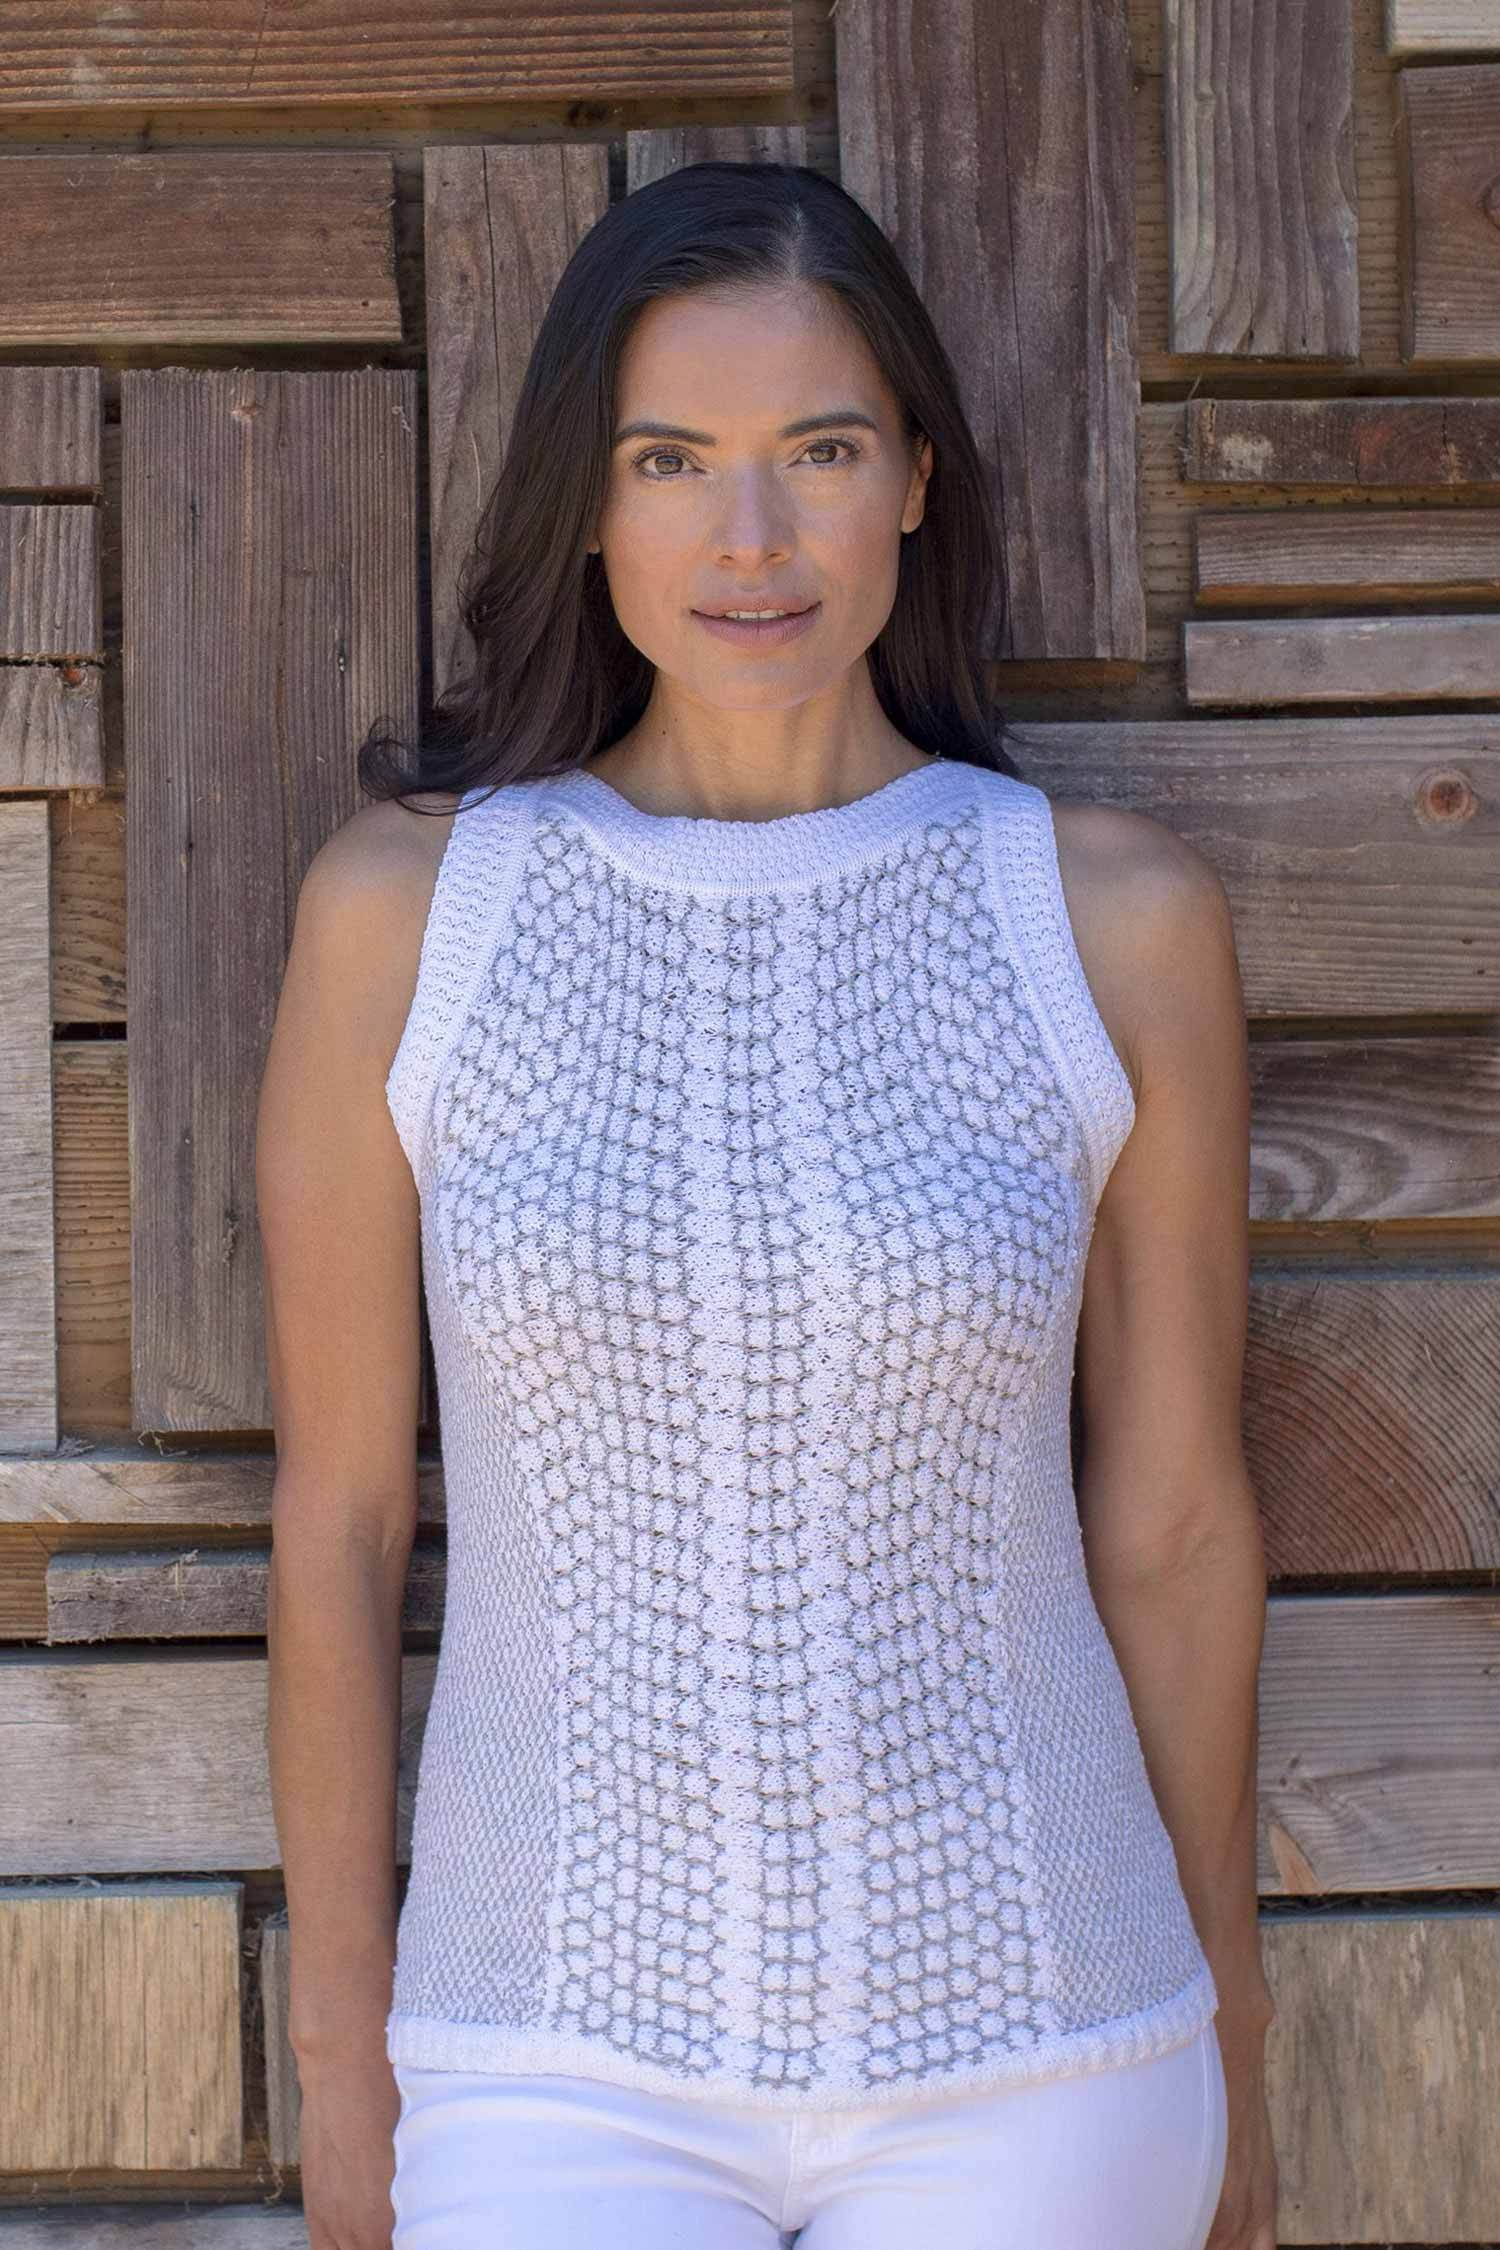 You may also like - Indigenous Designs Crochet and Knit Top